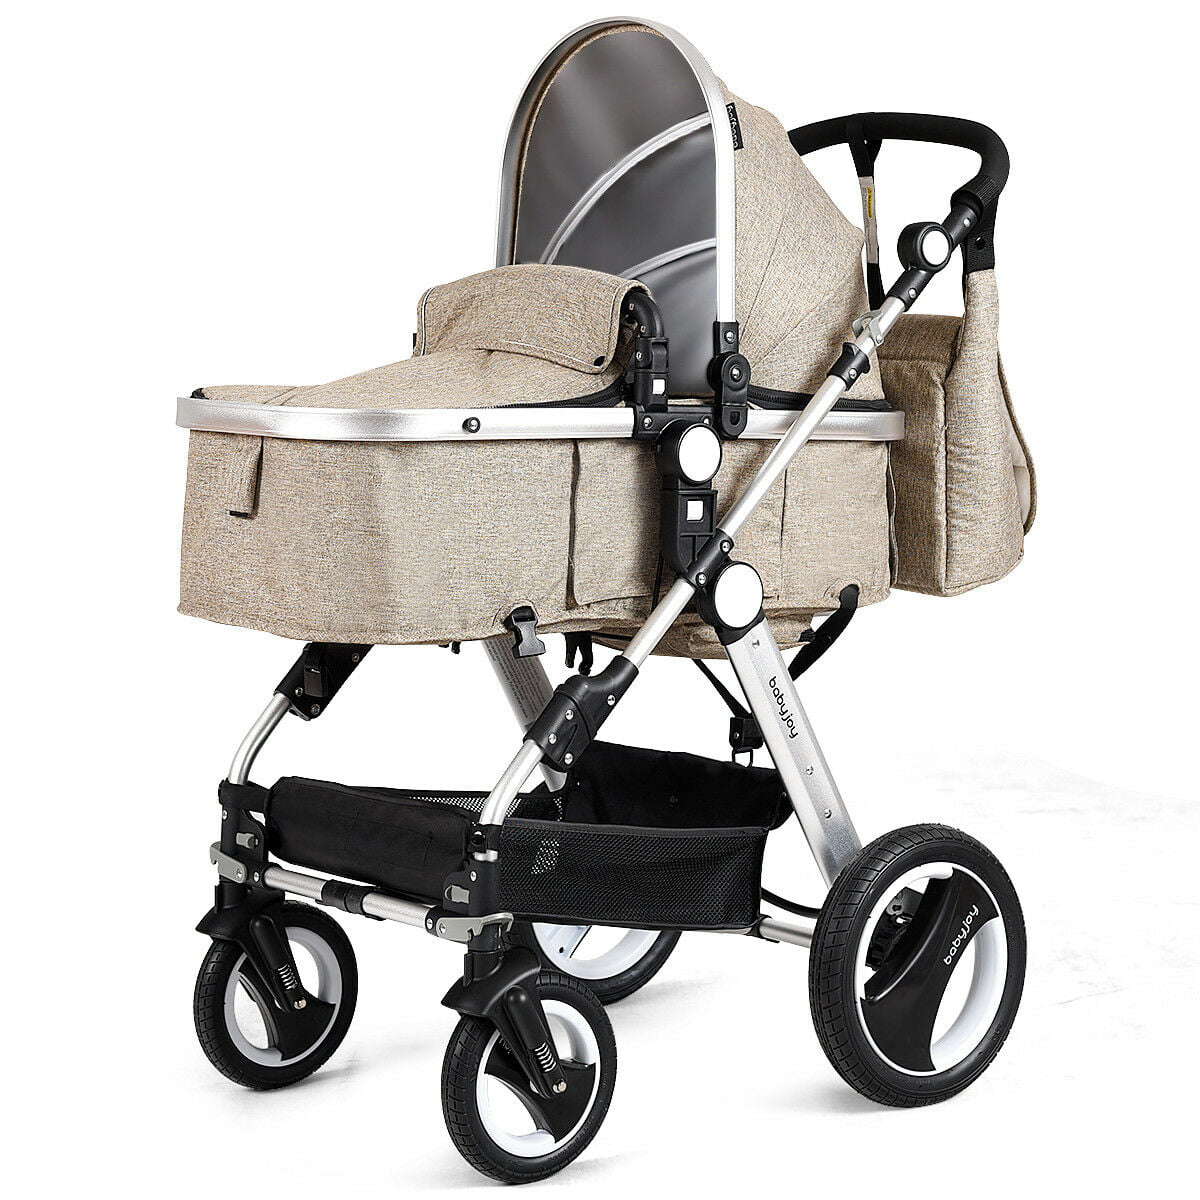 Was $440 ITEM CLOSEOUT Combi Mechacal 2AC Luxury Stroller Olive Green